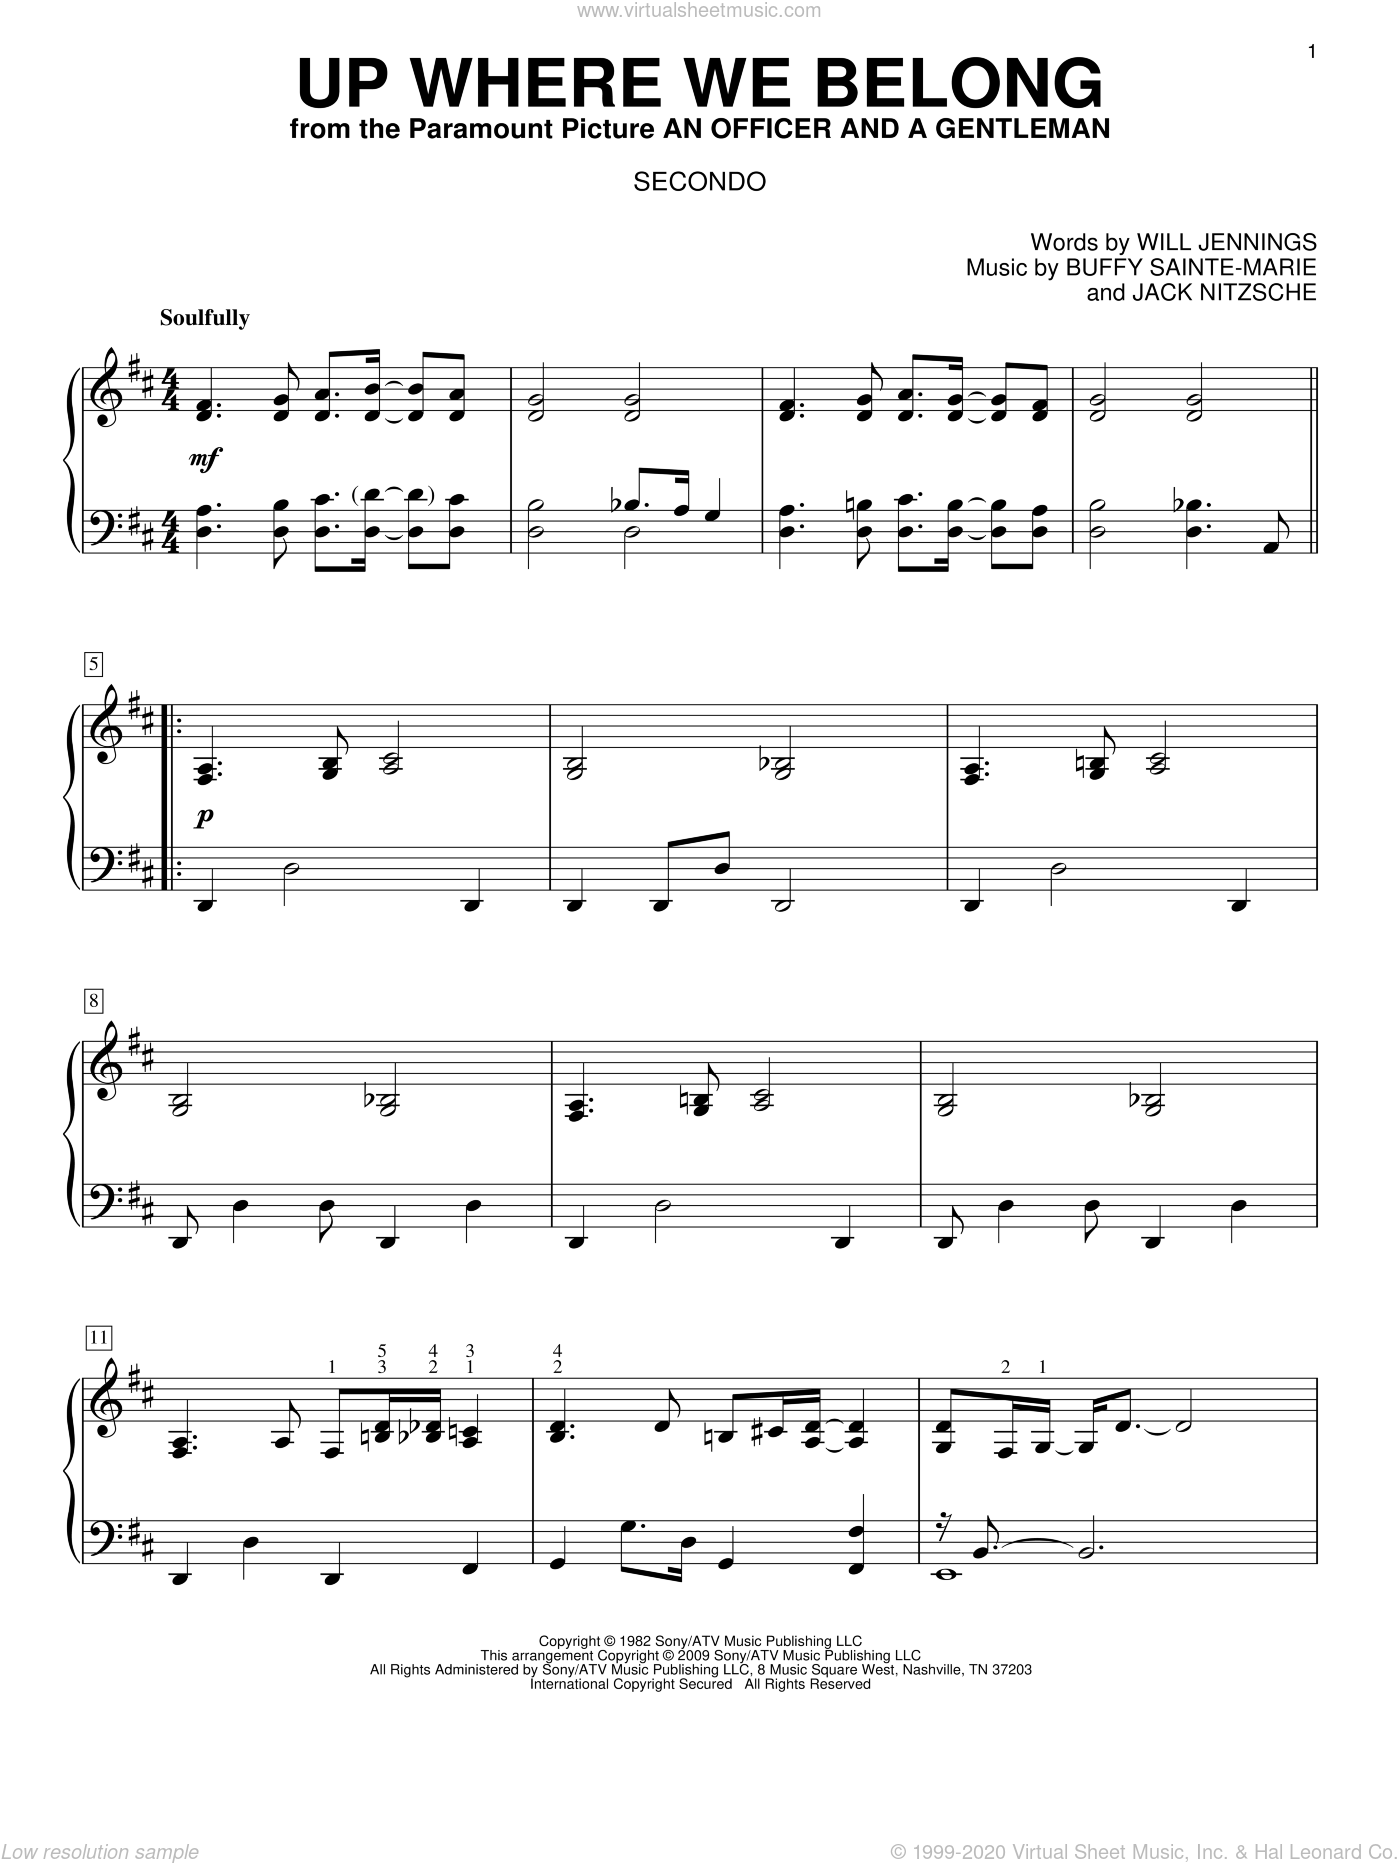 Up Where We Belong sheet music for piano four hands (duets) by Will Jennings